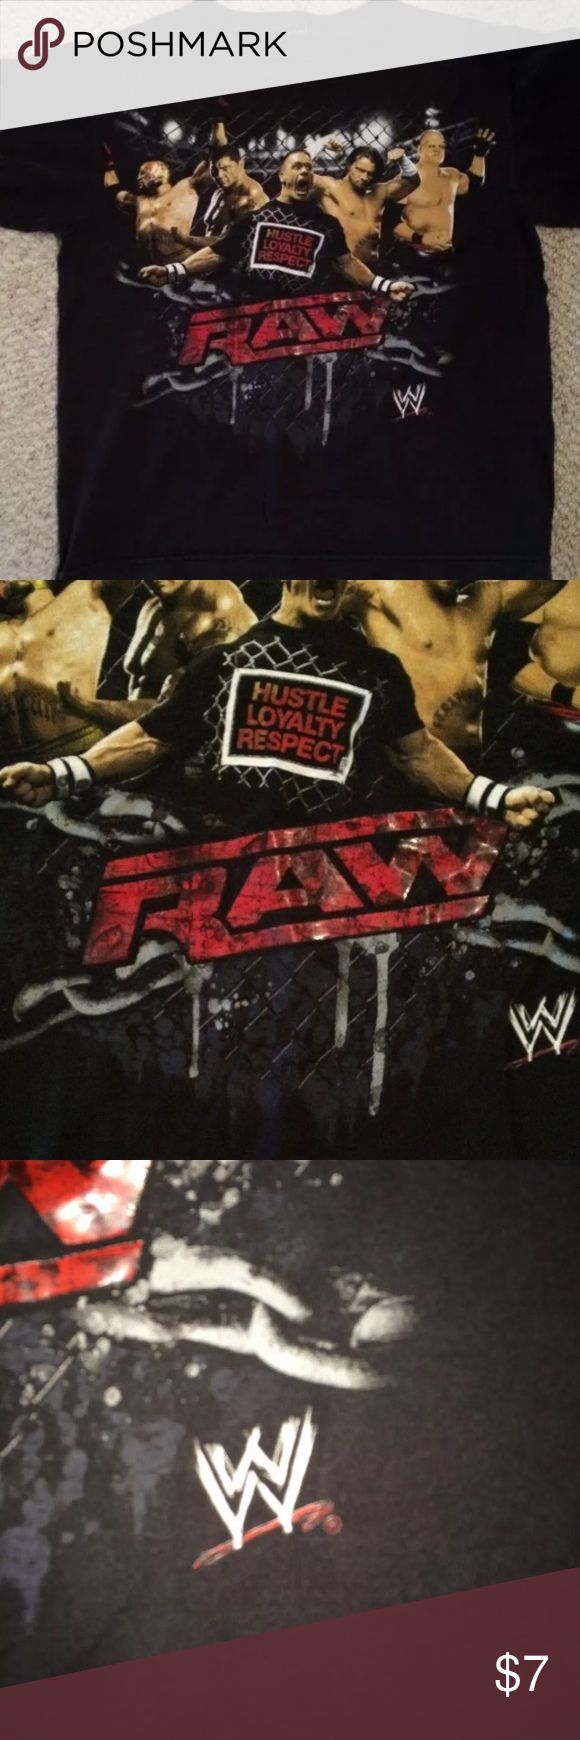 "WWE W t shirt raw hustle loyalty respect Cotton shirt. Unisex. Could also fit youth. 18"" chest. 21.5"" length.  One small snag on shirt. Otherwise awesome shape. Tops Tees - Short Sleeve"